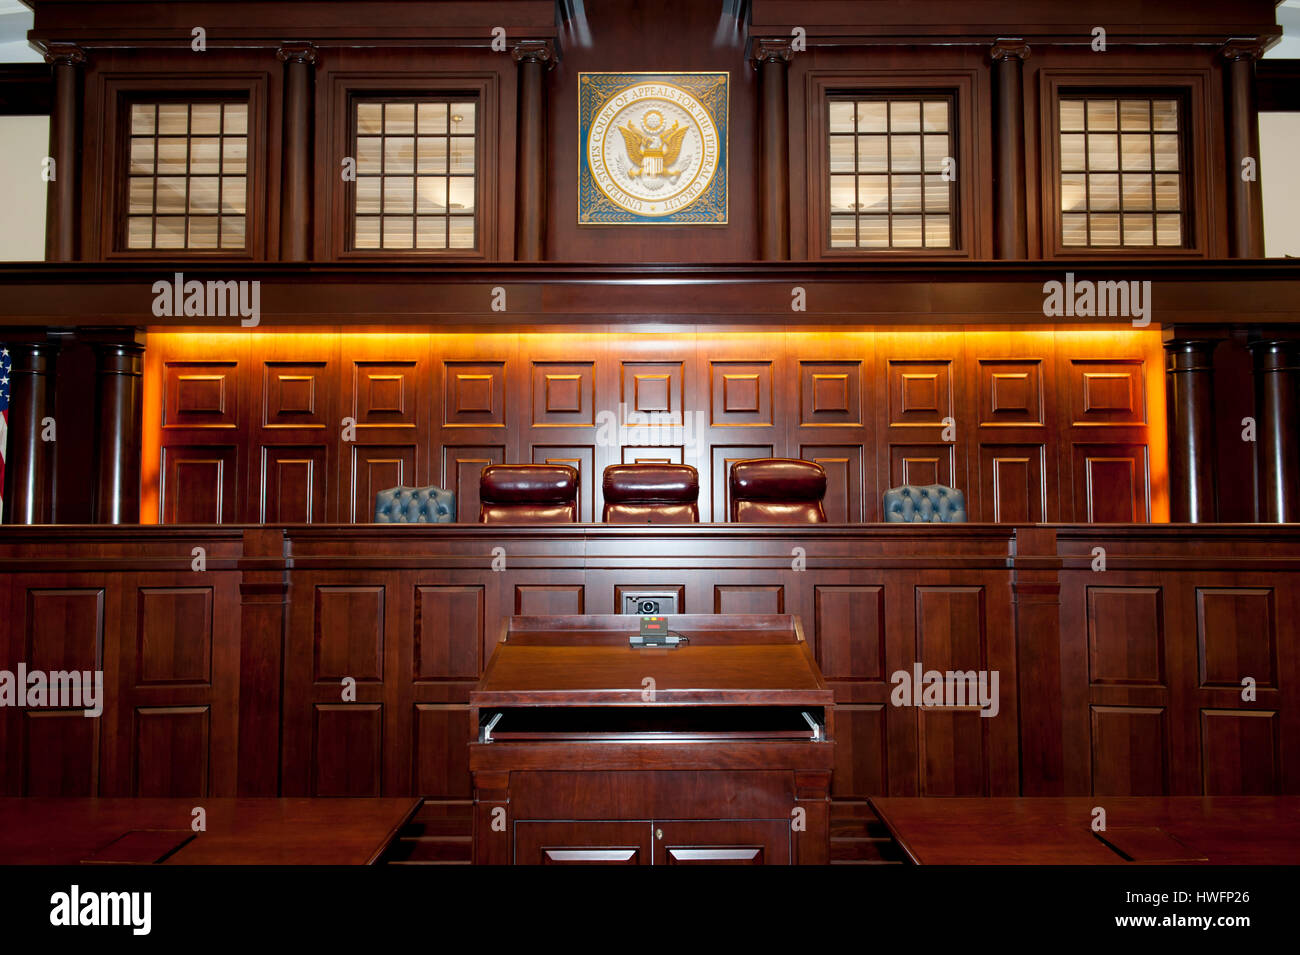 interior-of-a-united-states-federal-appeals-courtroom-in-washington-HWFP26.jpg